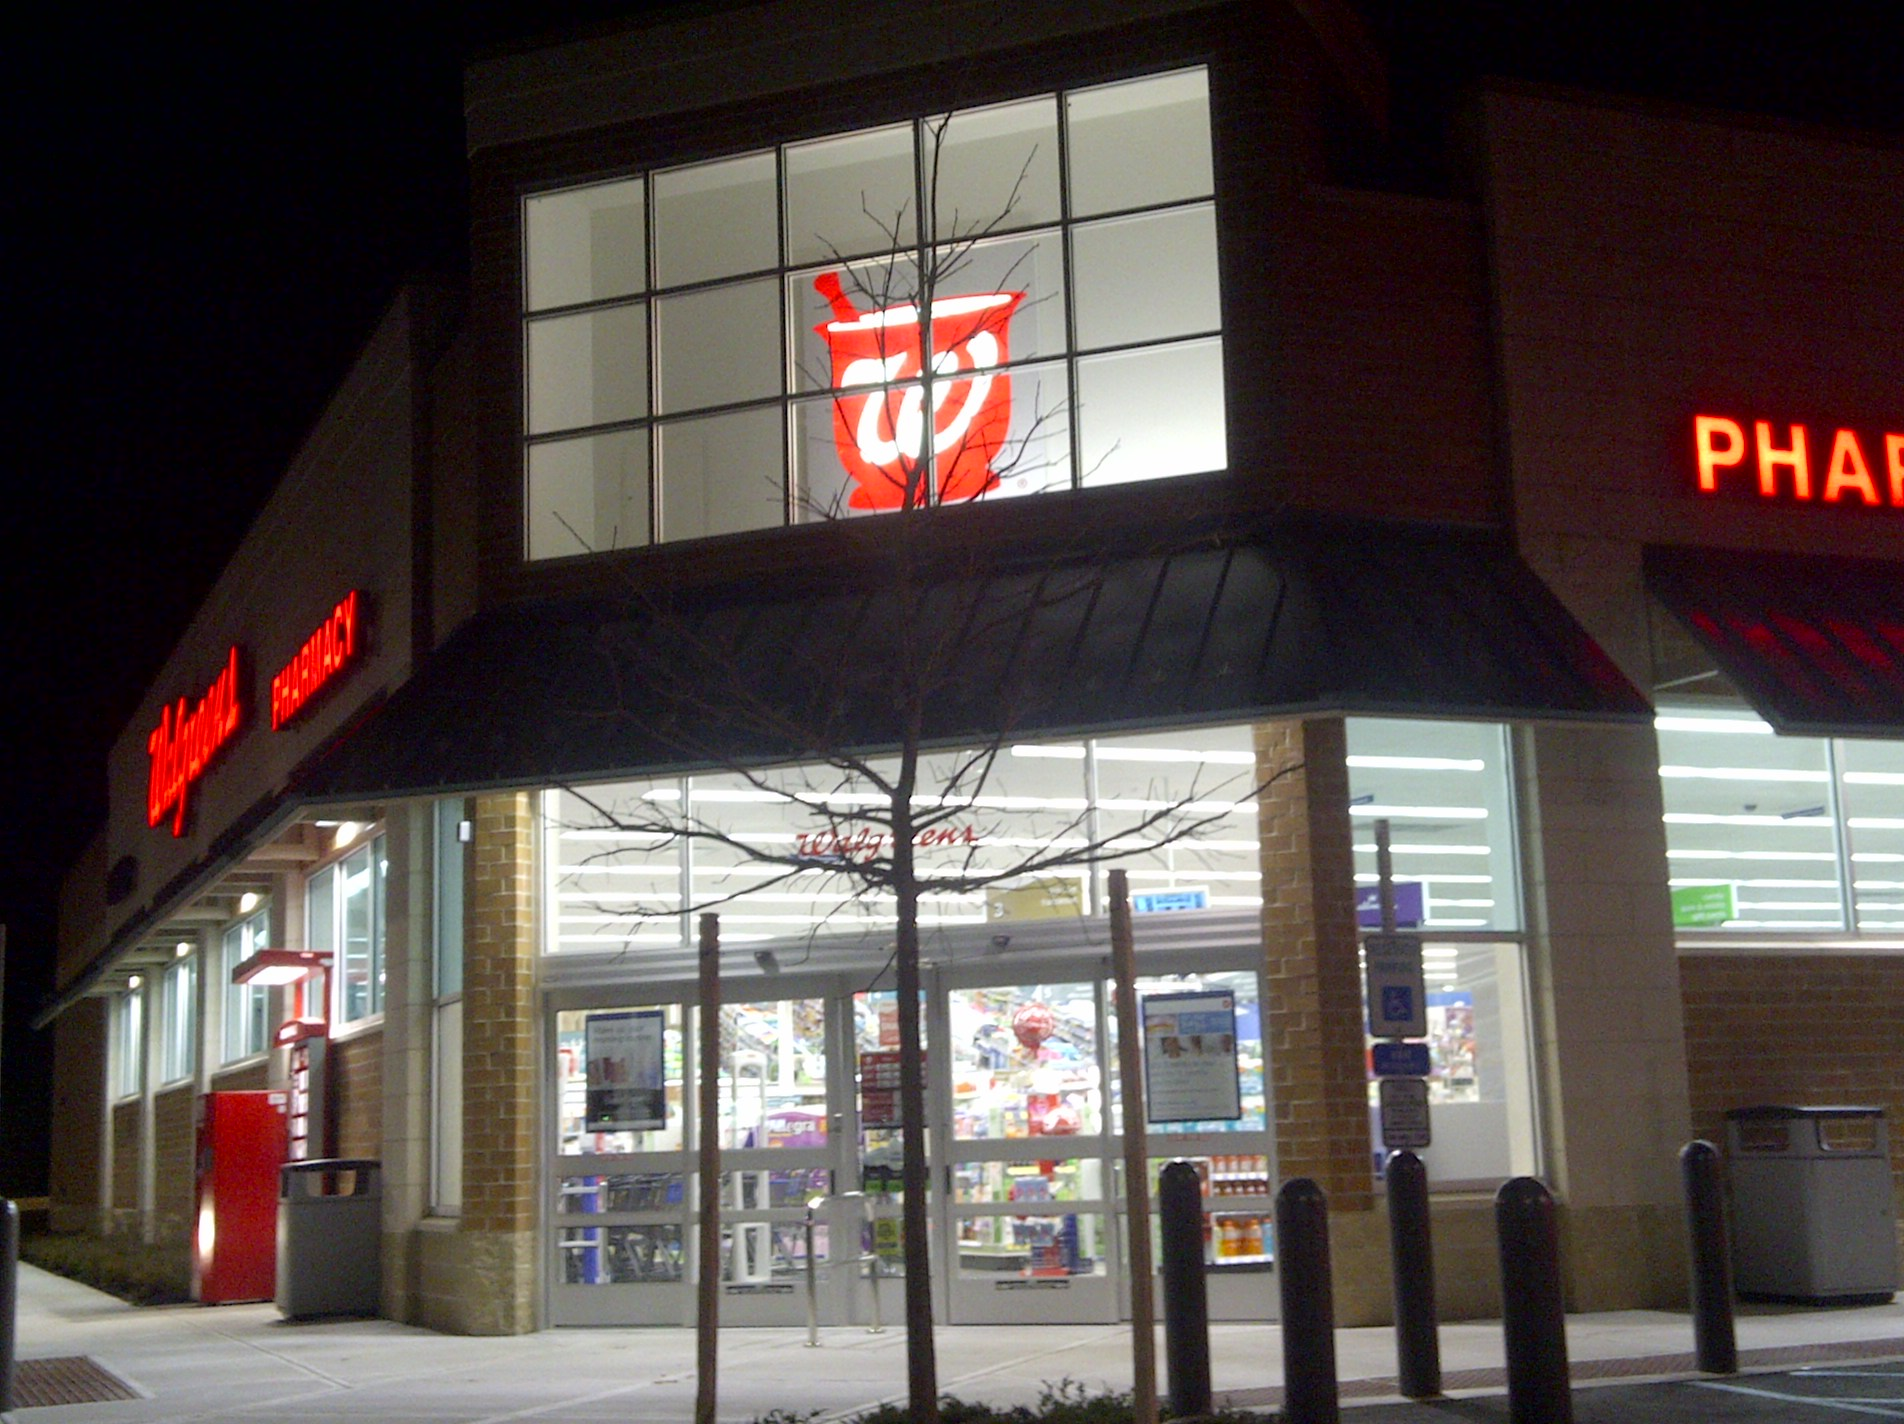 Walgreens - Egg Harbor Township, New Jersey